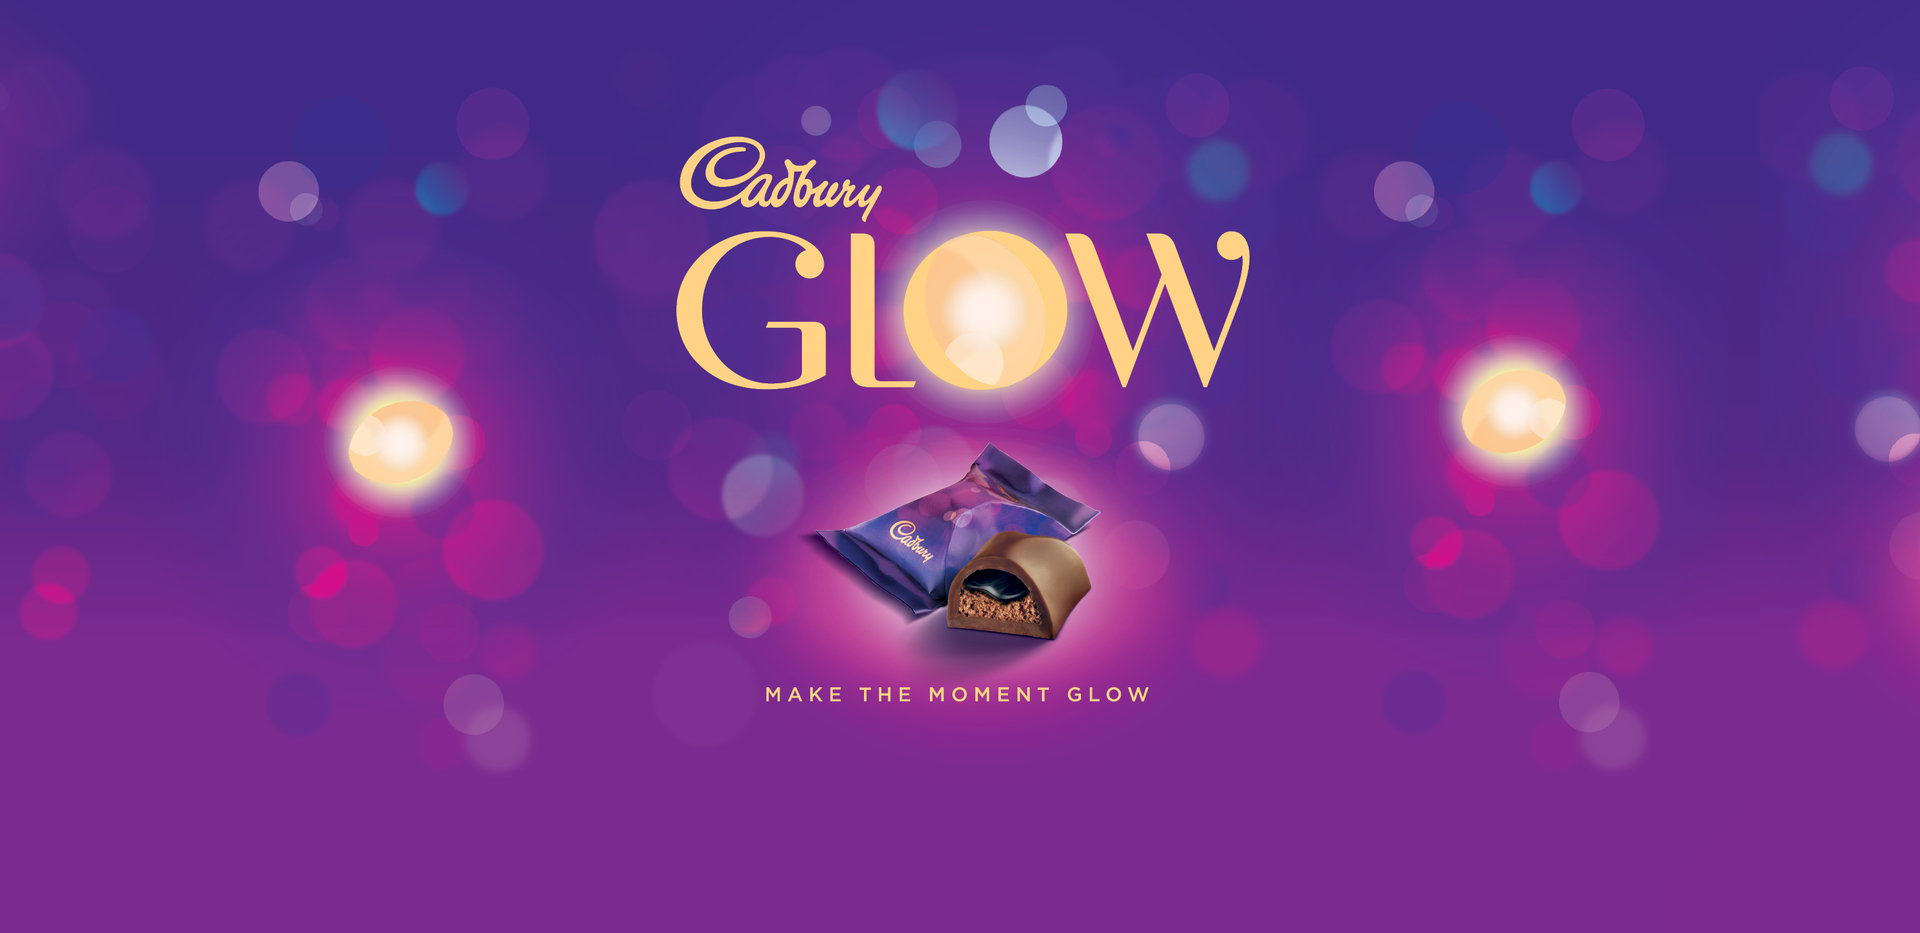 Gifting Made Easy with Cadbury Glow